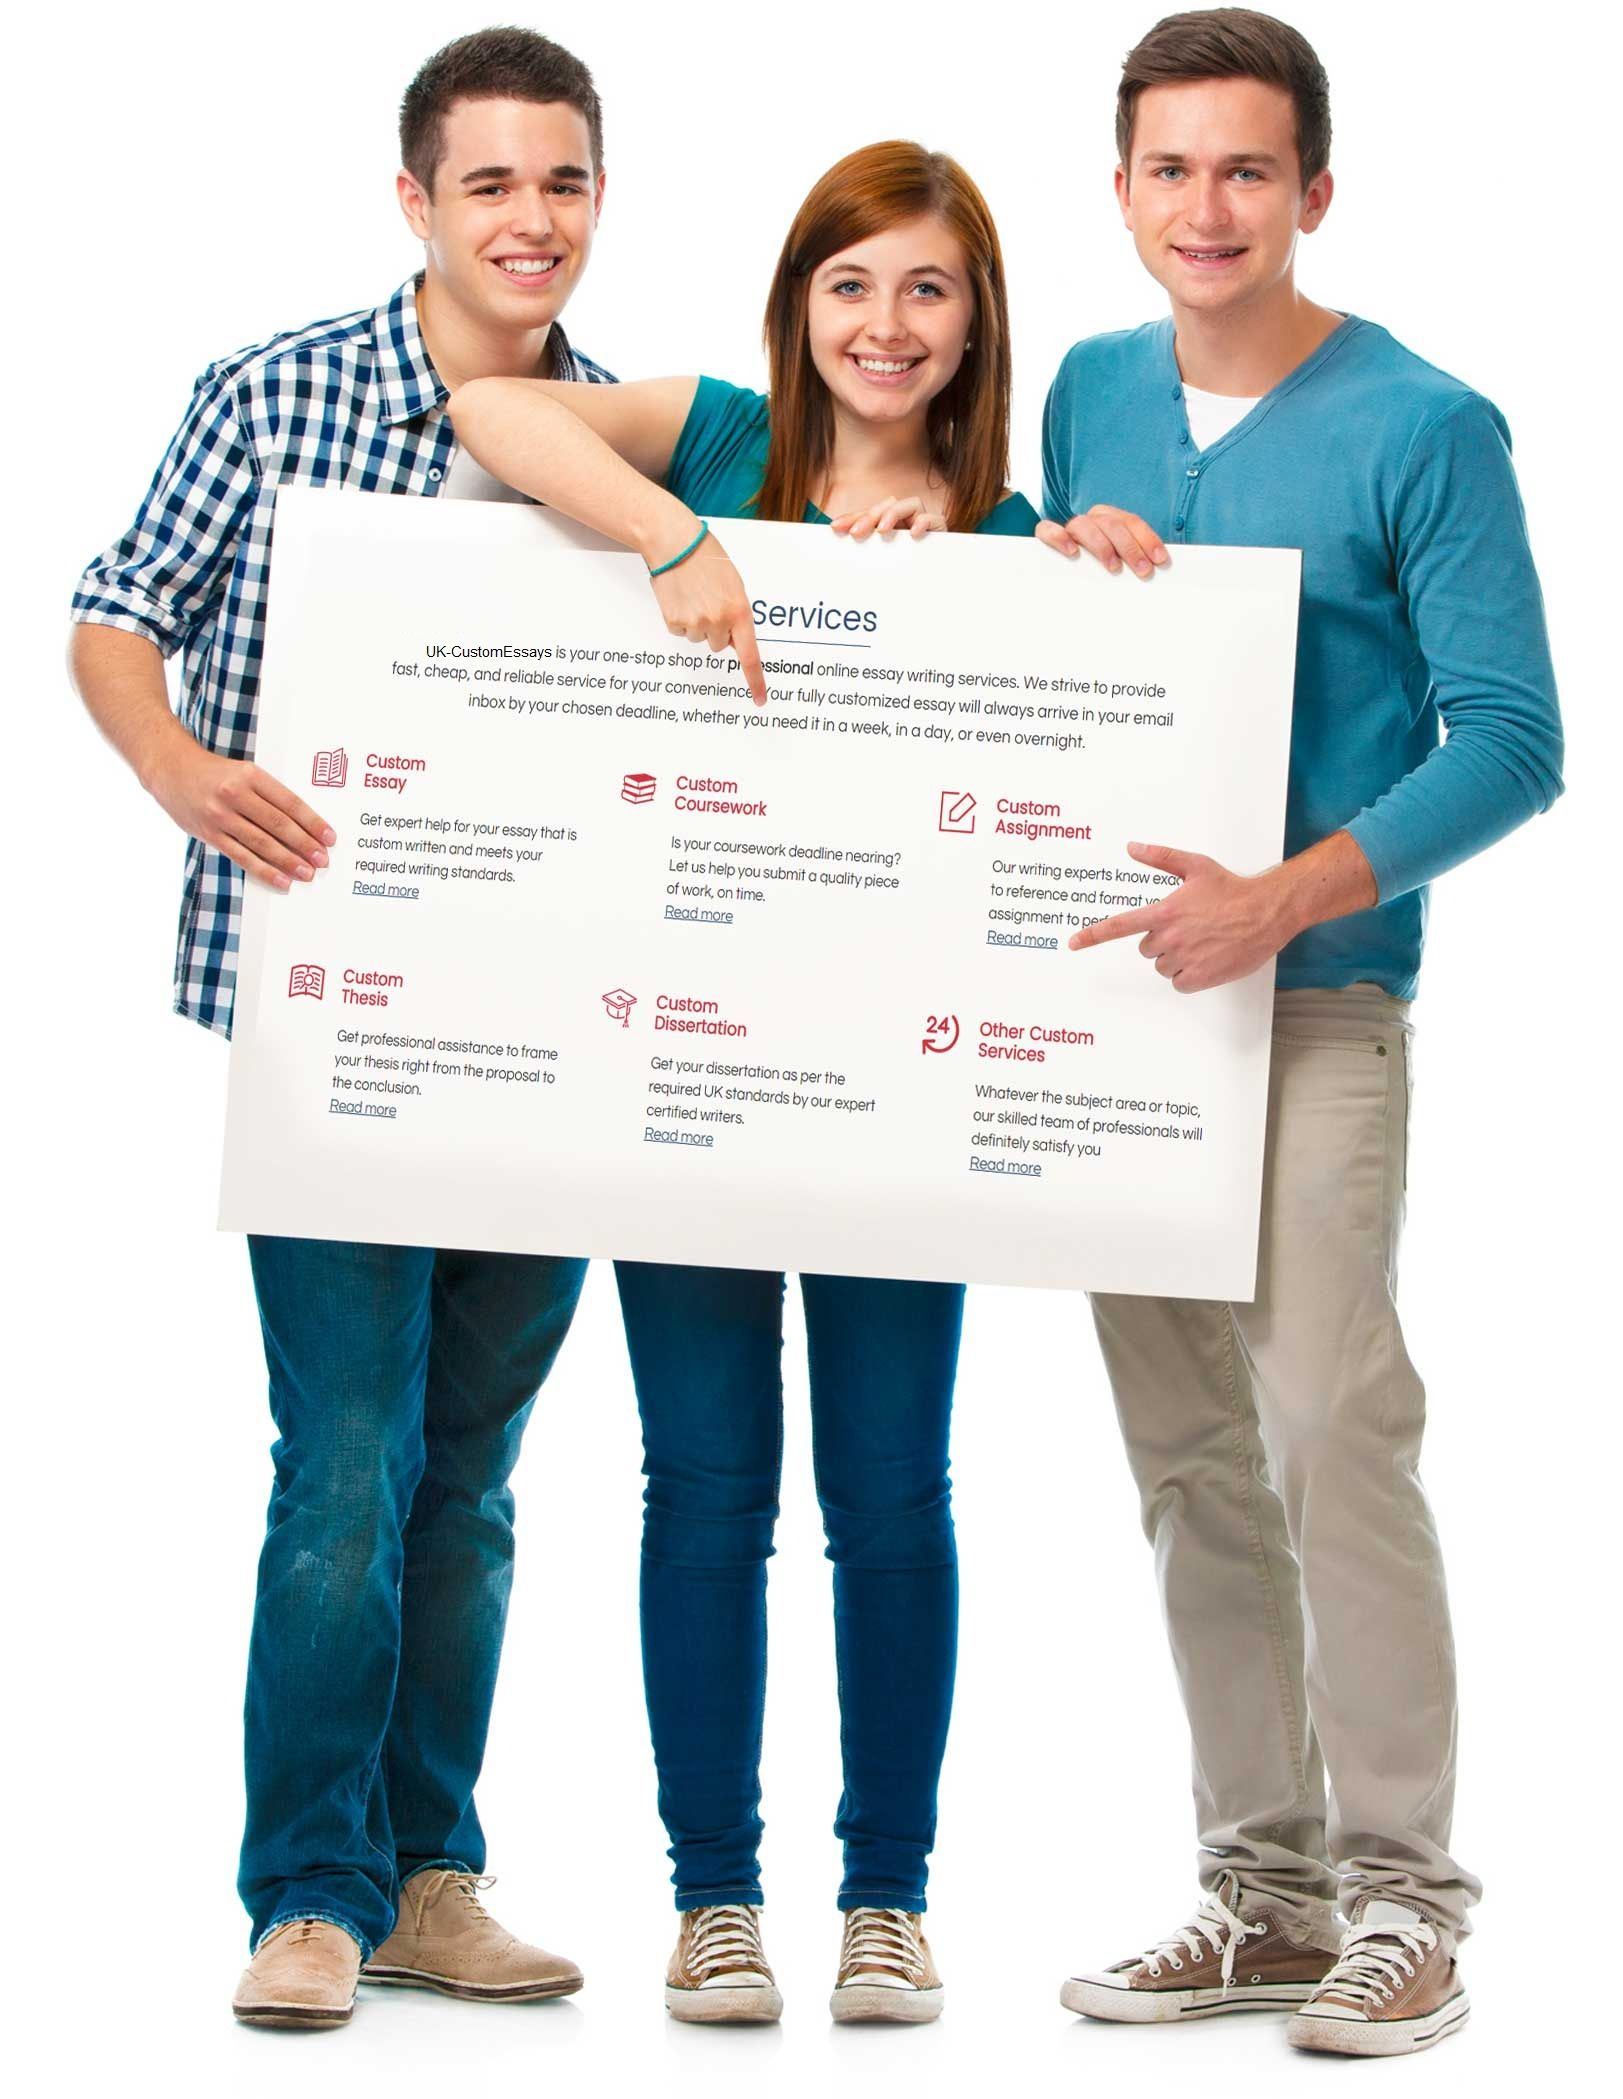 009 Custom Essay Writing Example Awesome Services Canada Reviews Service Full